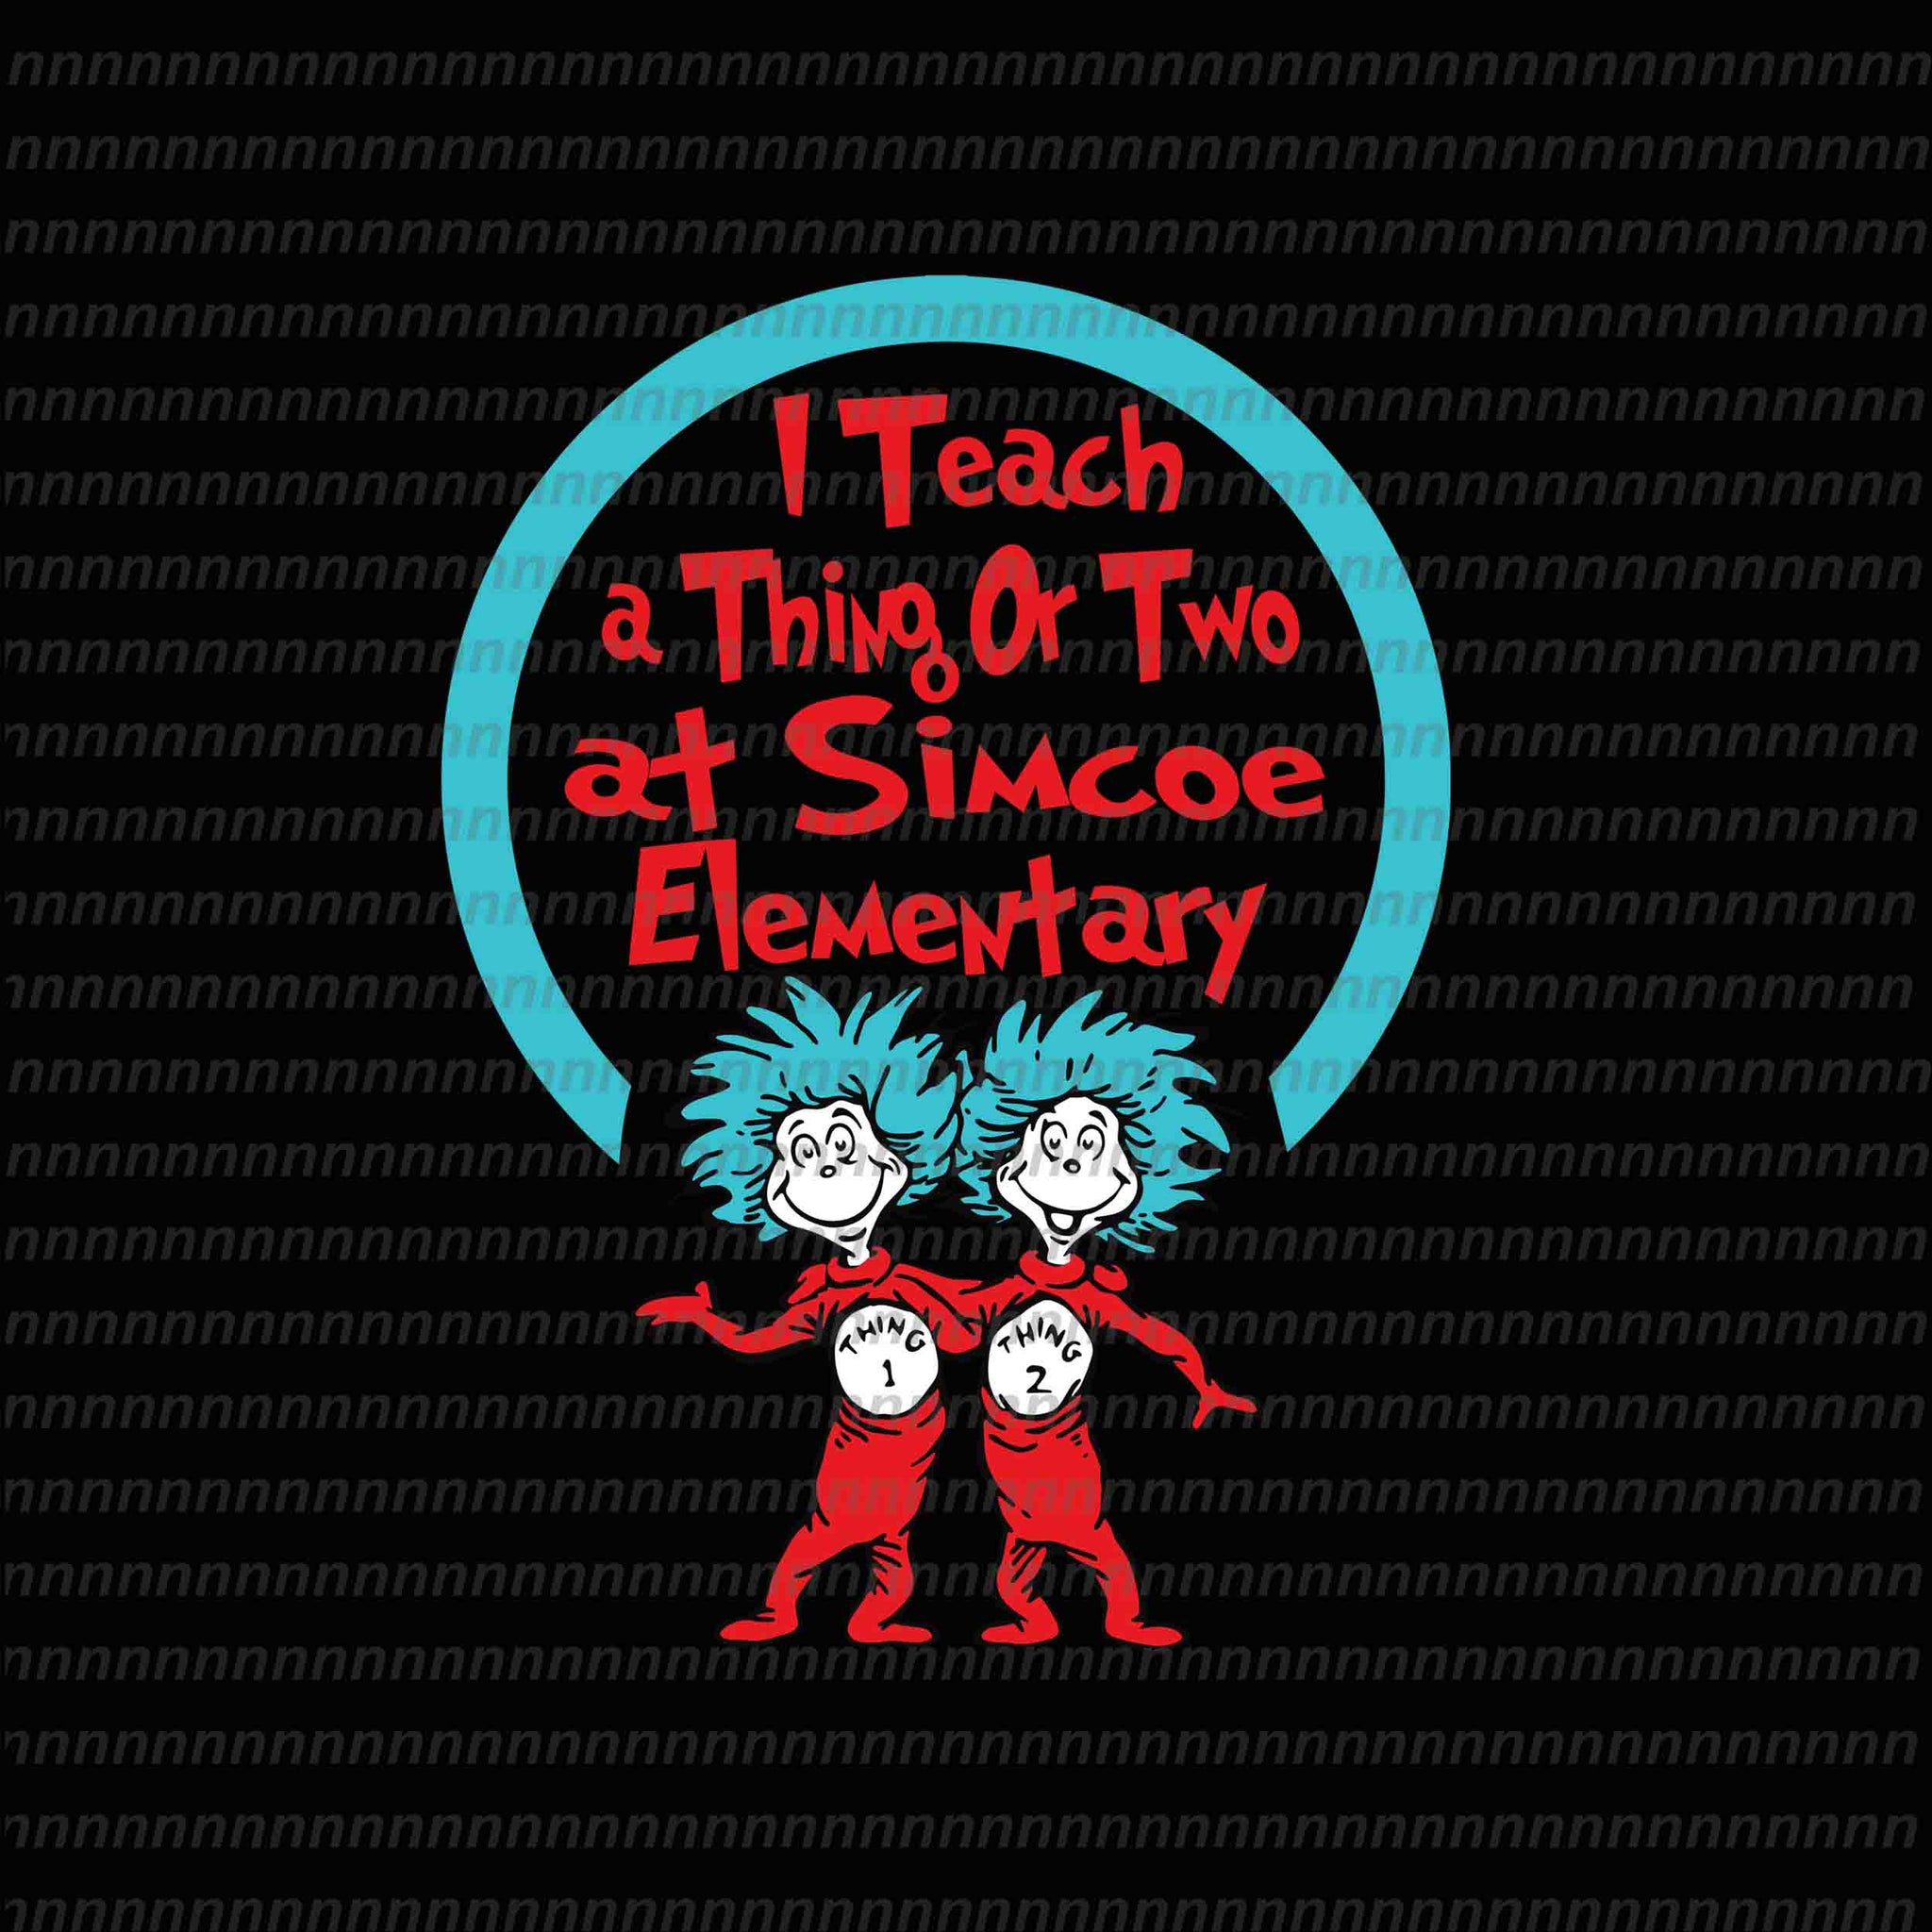 I teach a thing or two at Simcoe Elementary, dr seuss svg, dr seuss vector, dr seuss quote, dr seuss design, Cat in the hat svg, thing 1 thing 2 thing 3, svg, png, dxf, eps file